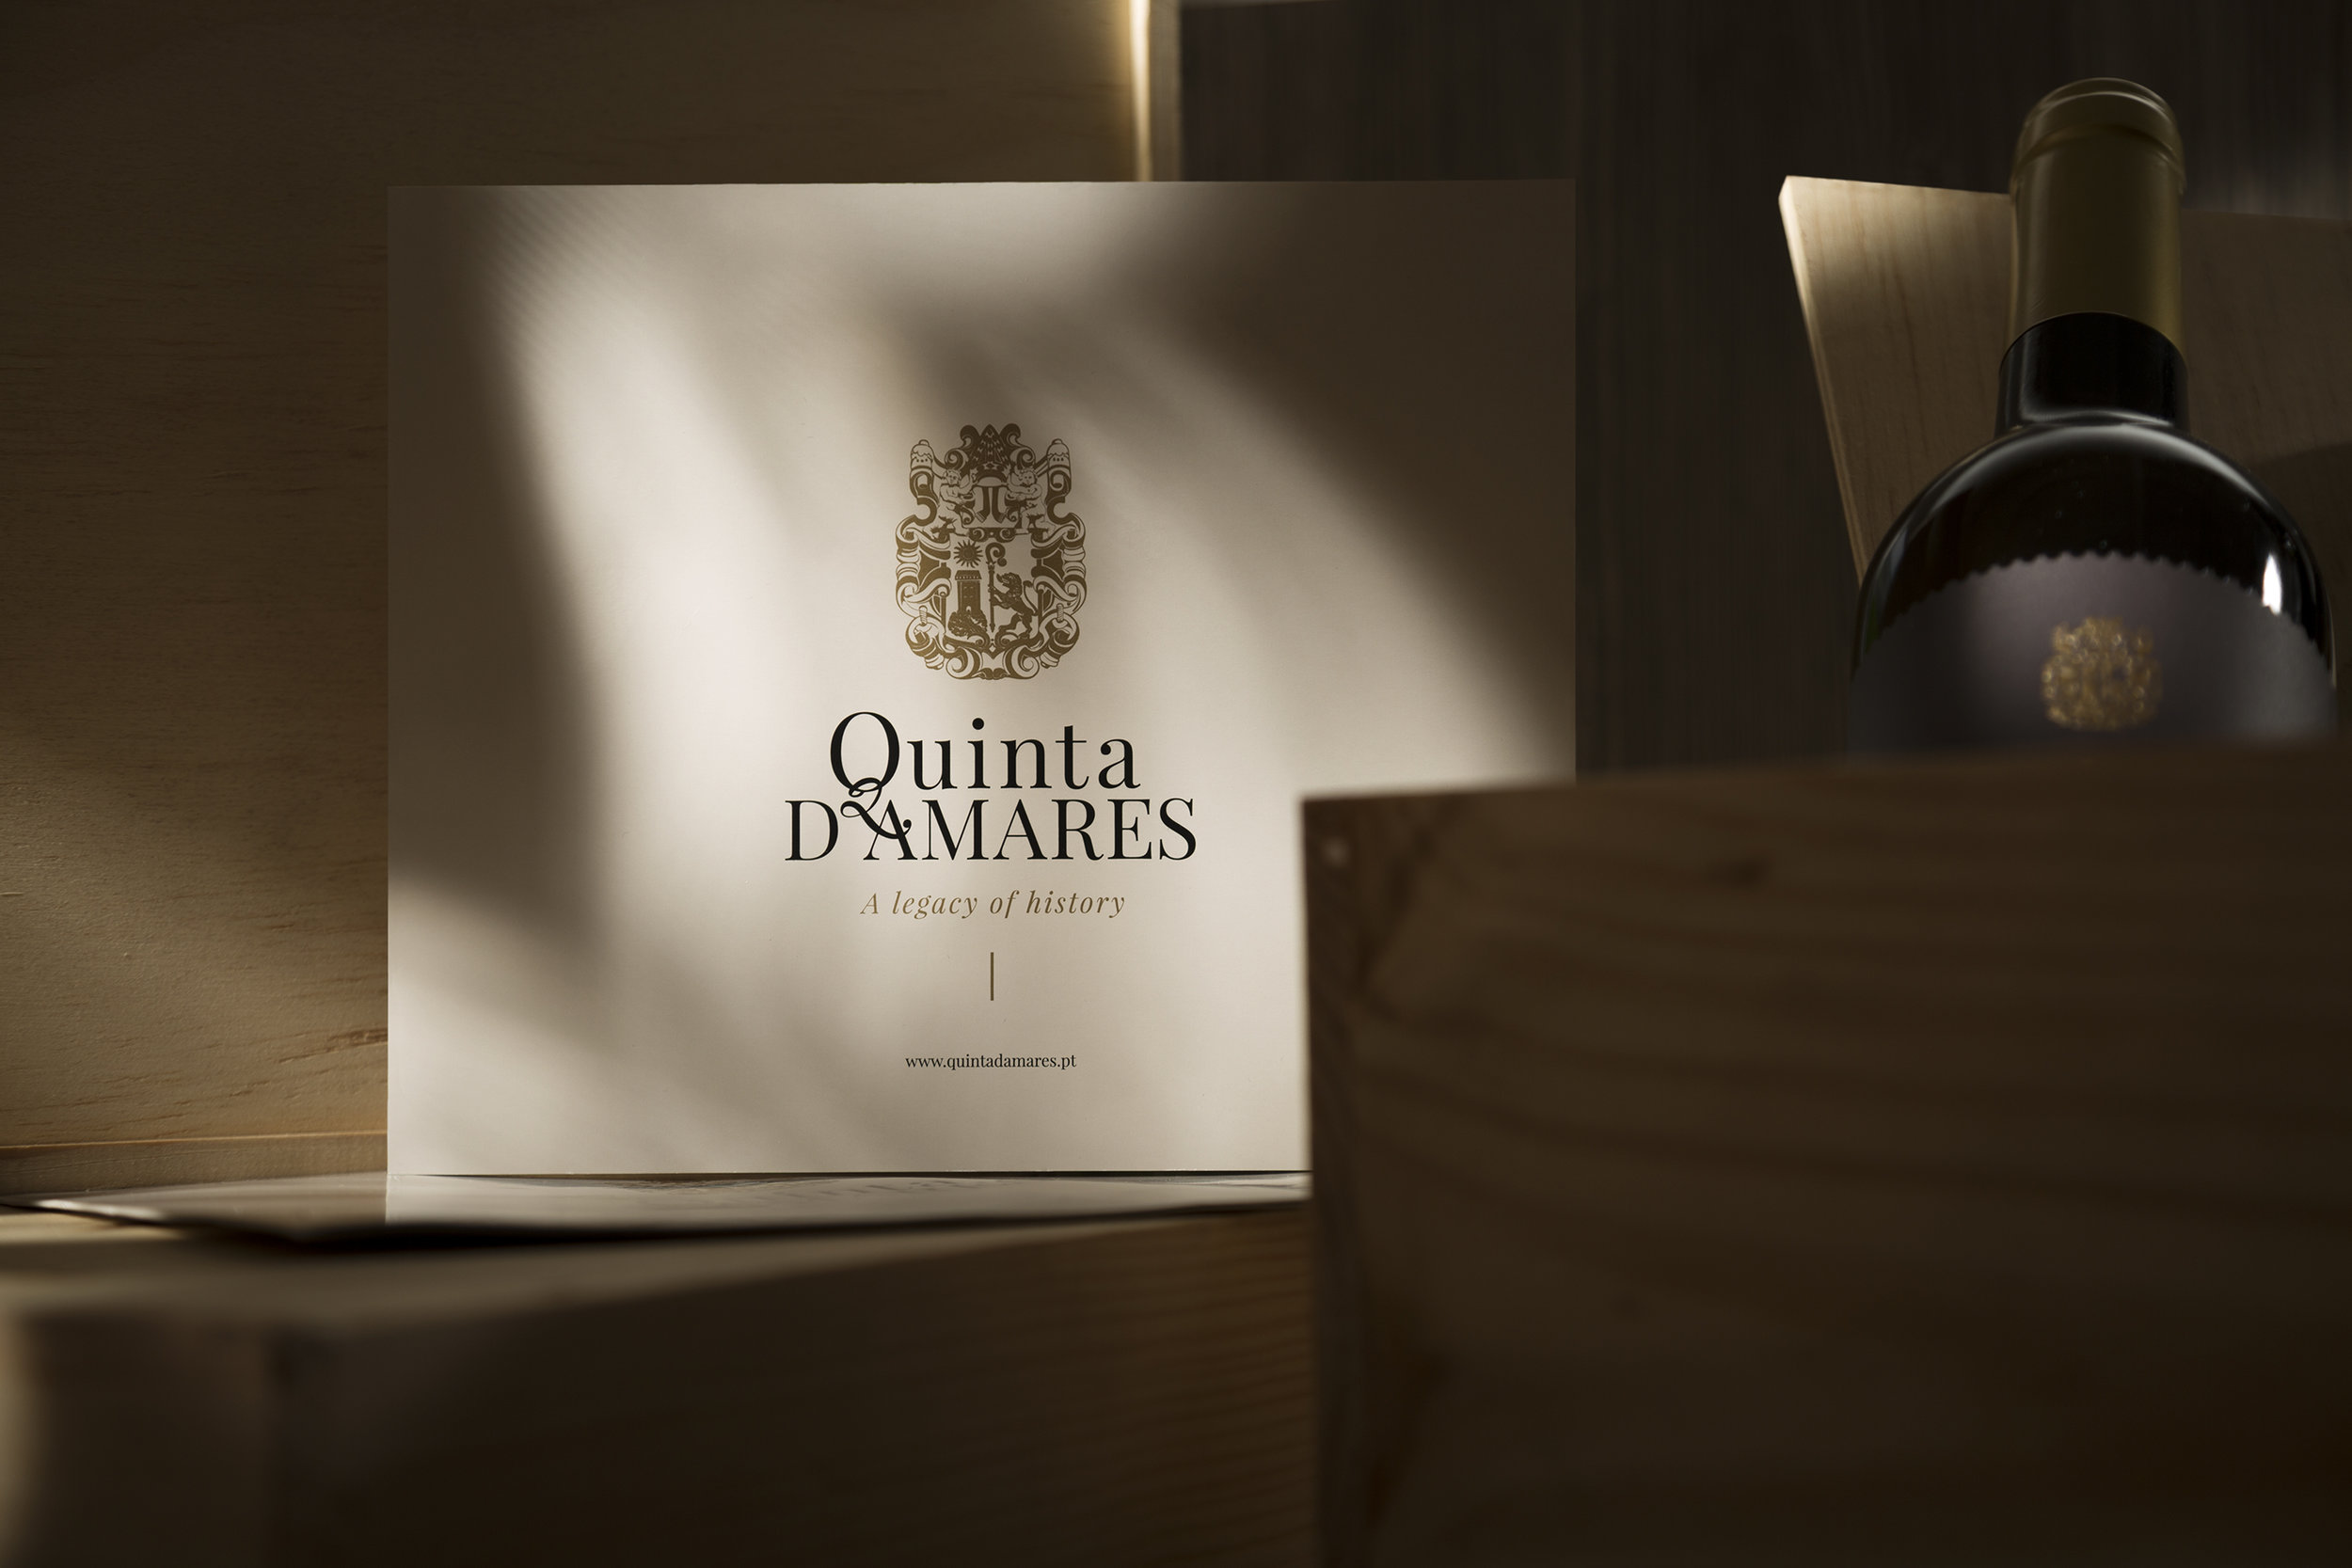 Renewed Visual Identity with Origin of Monastery Estate Crest and Traditions of the Estate